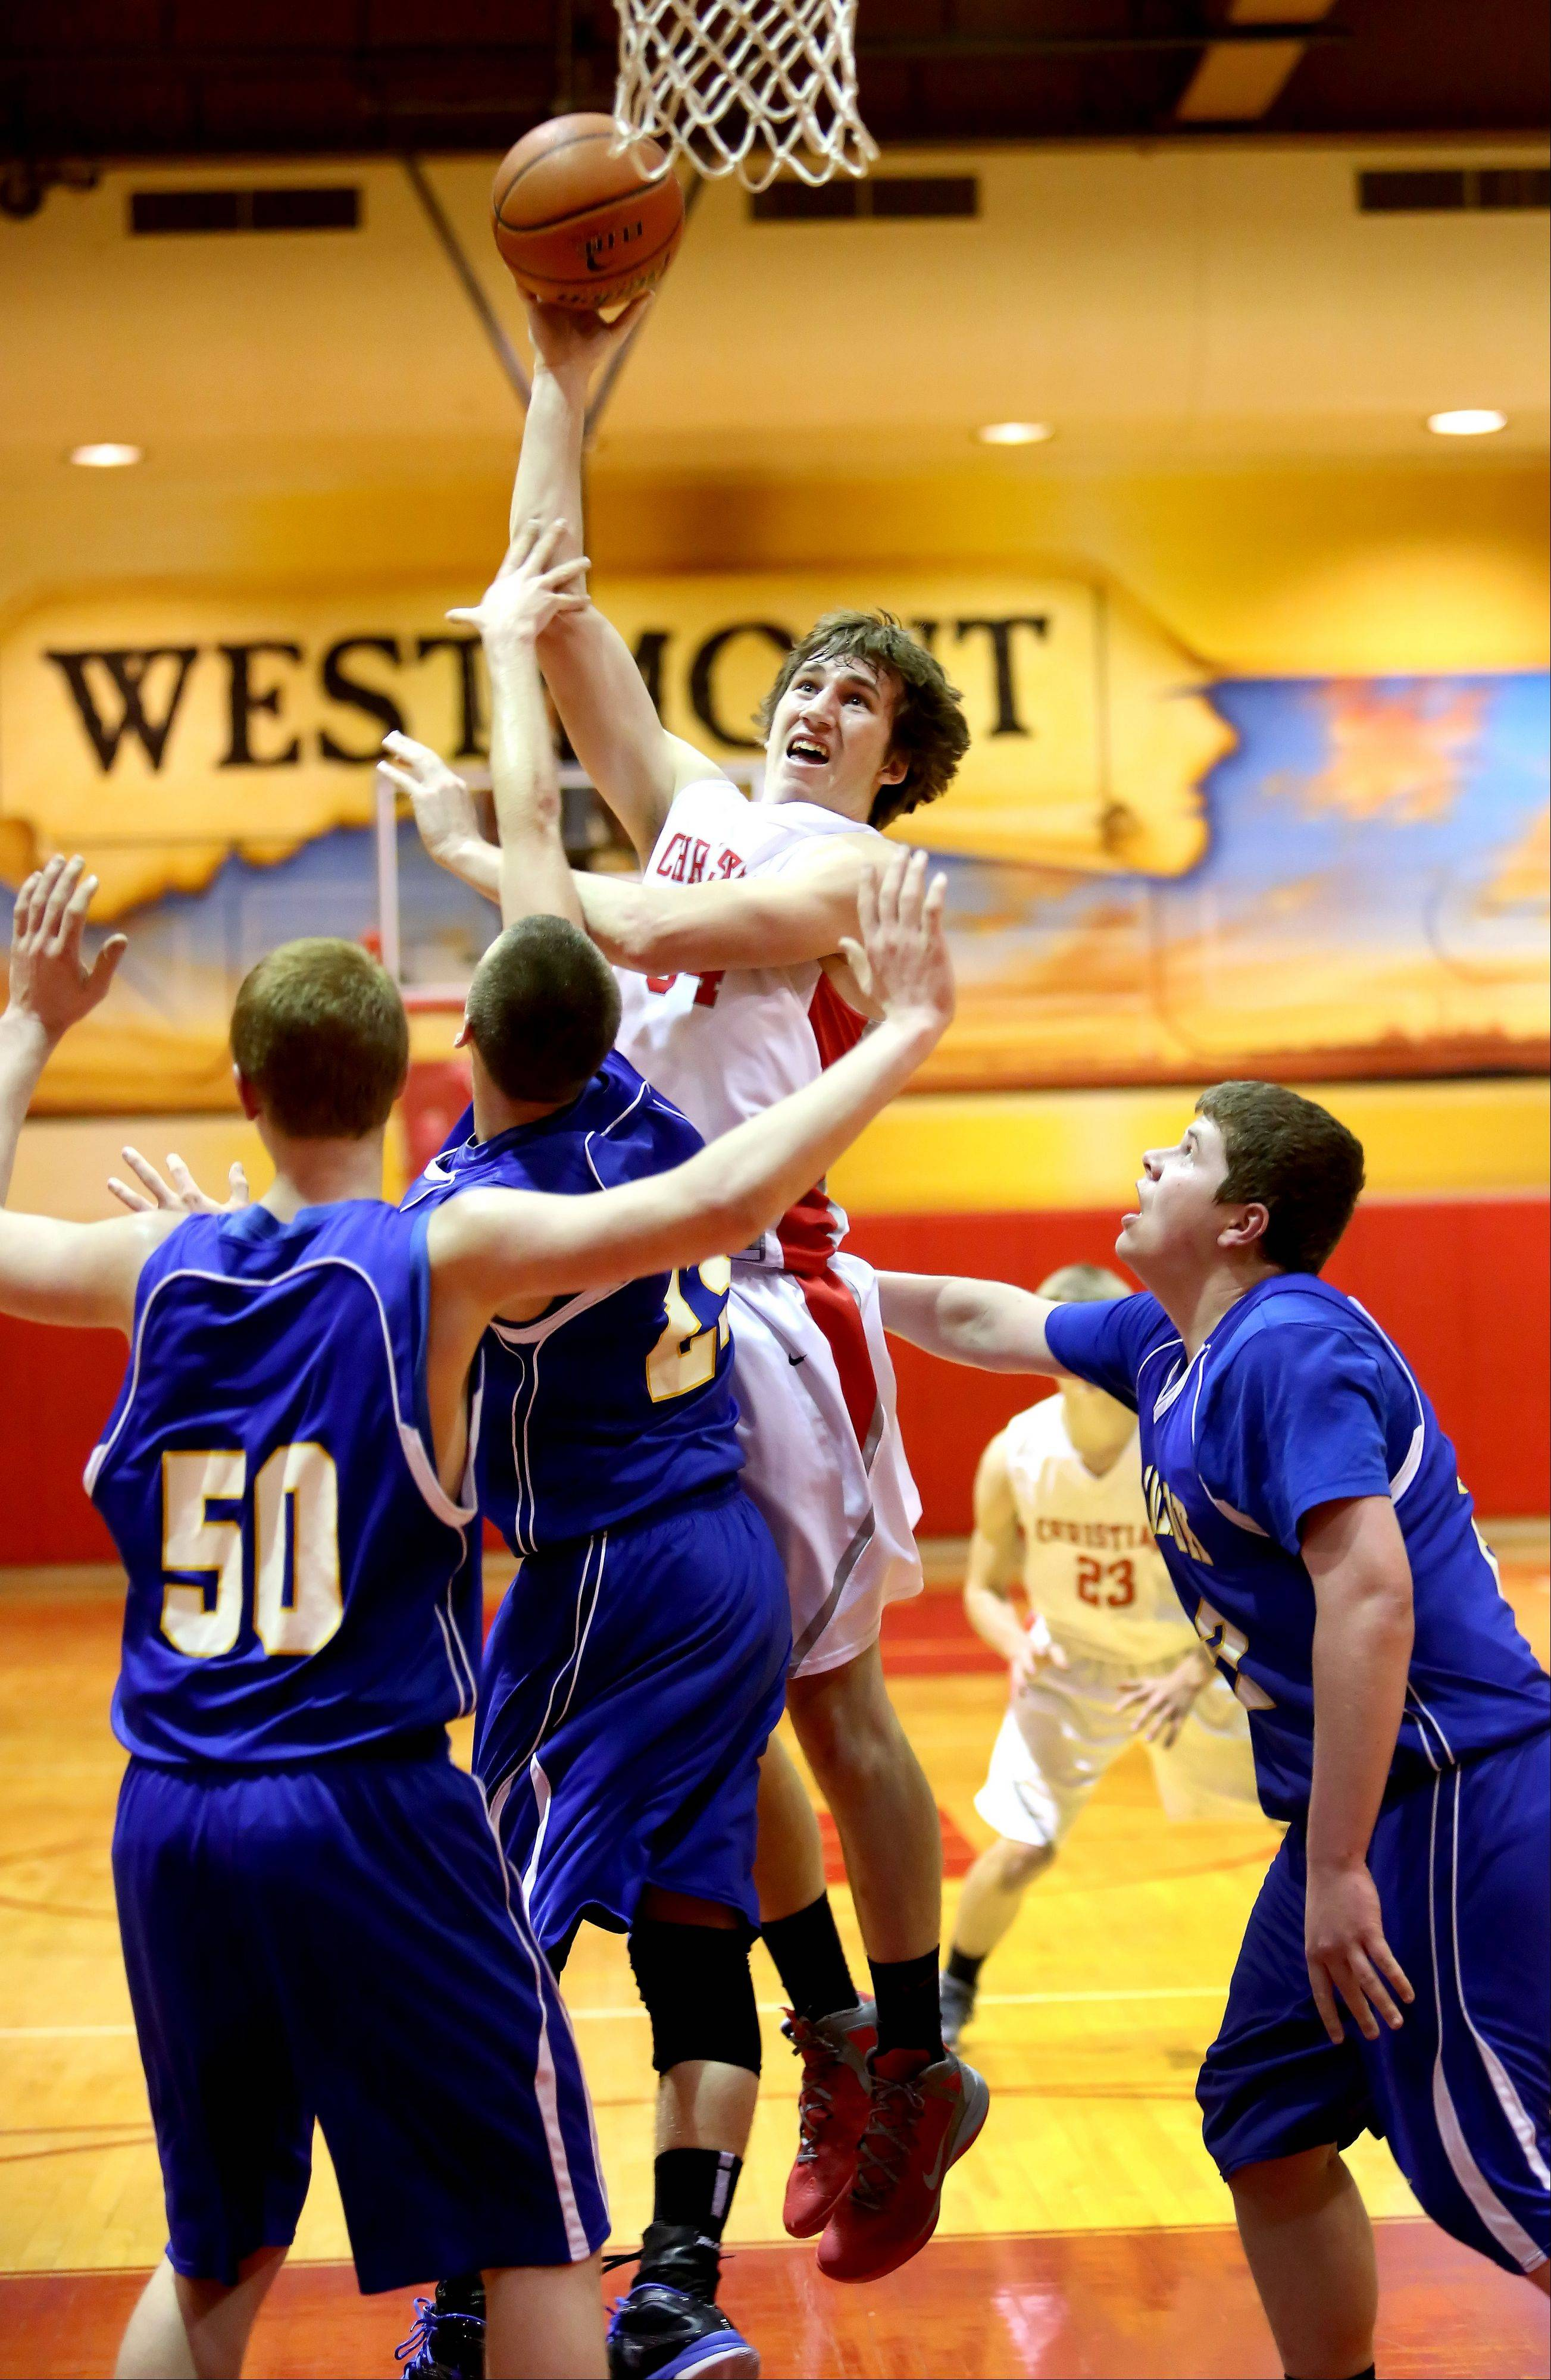 Cory Windle of Aurora Christian goes up for 2 points against Somonauk in Class 2A regional action Monday in Westmont.